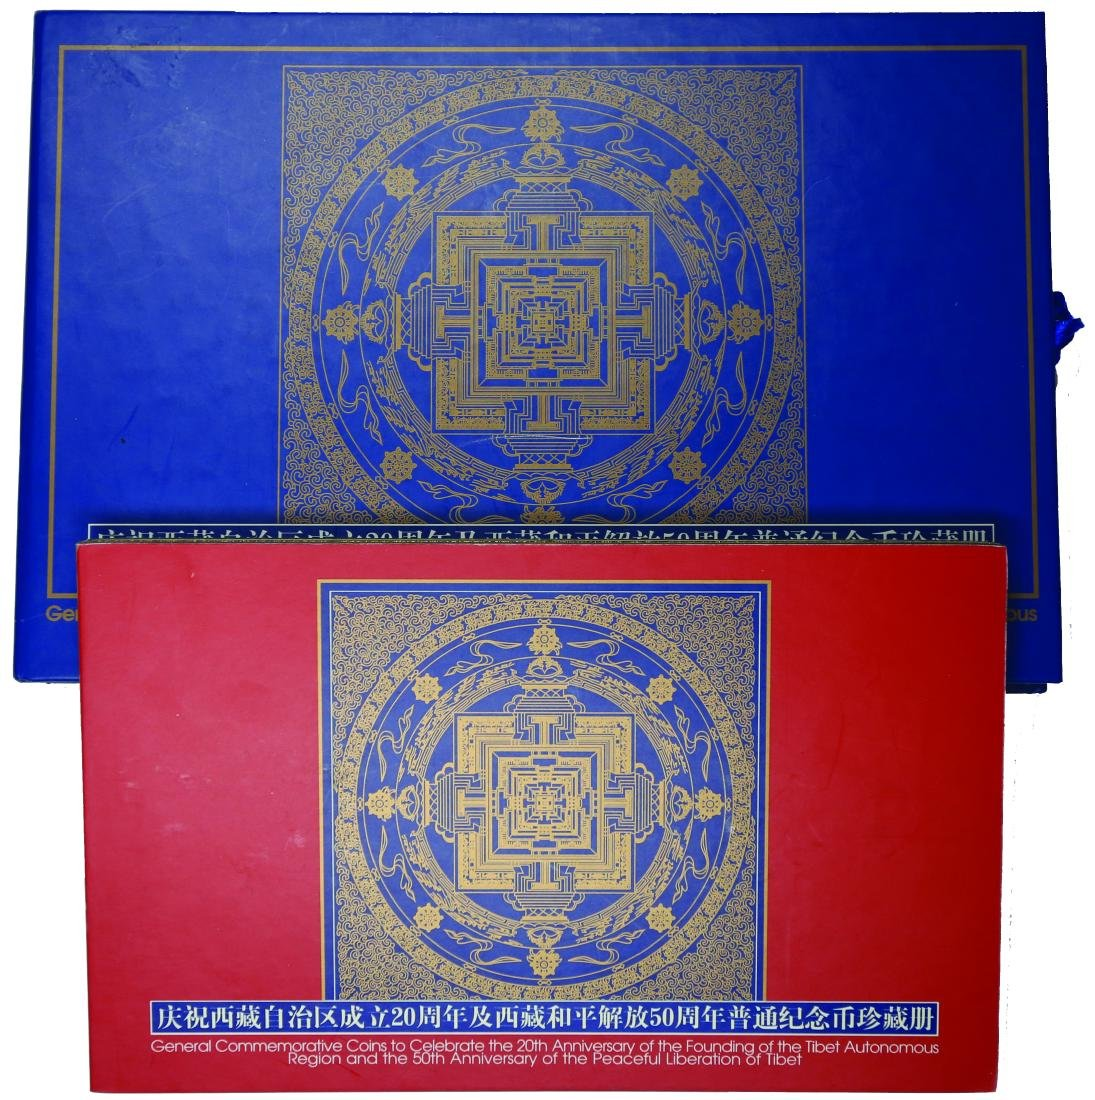 20th Anniversary Of the founding the Tibet 50th